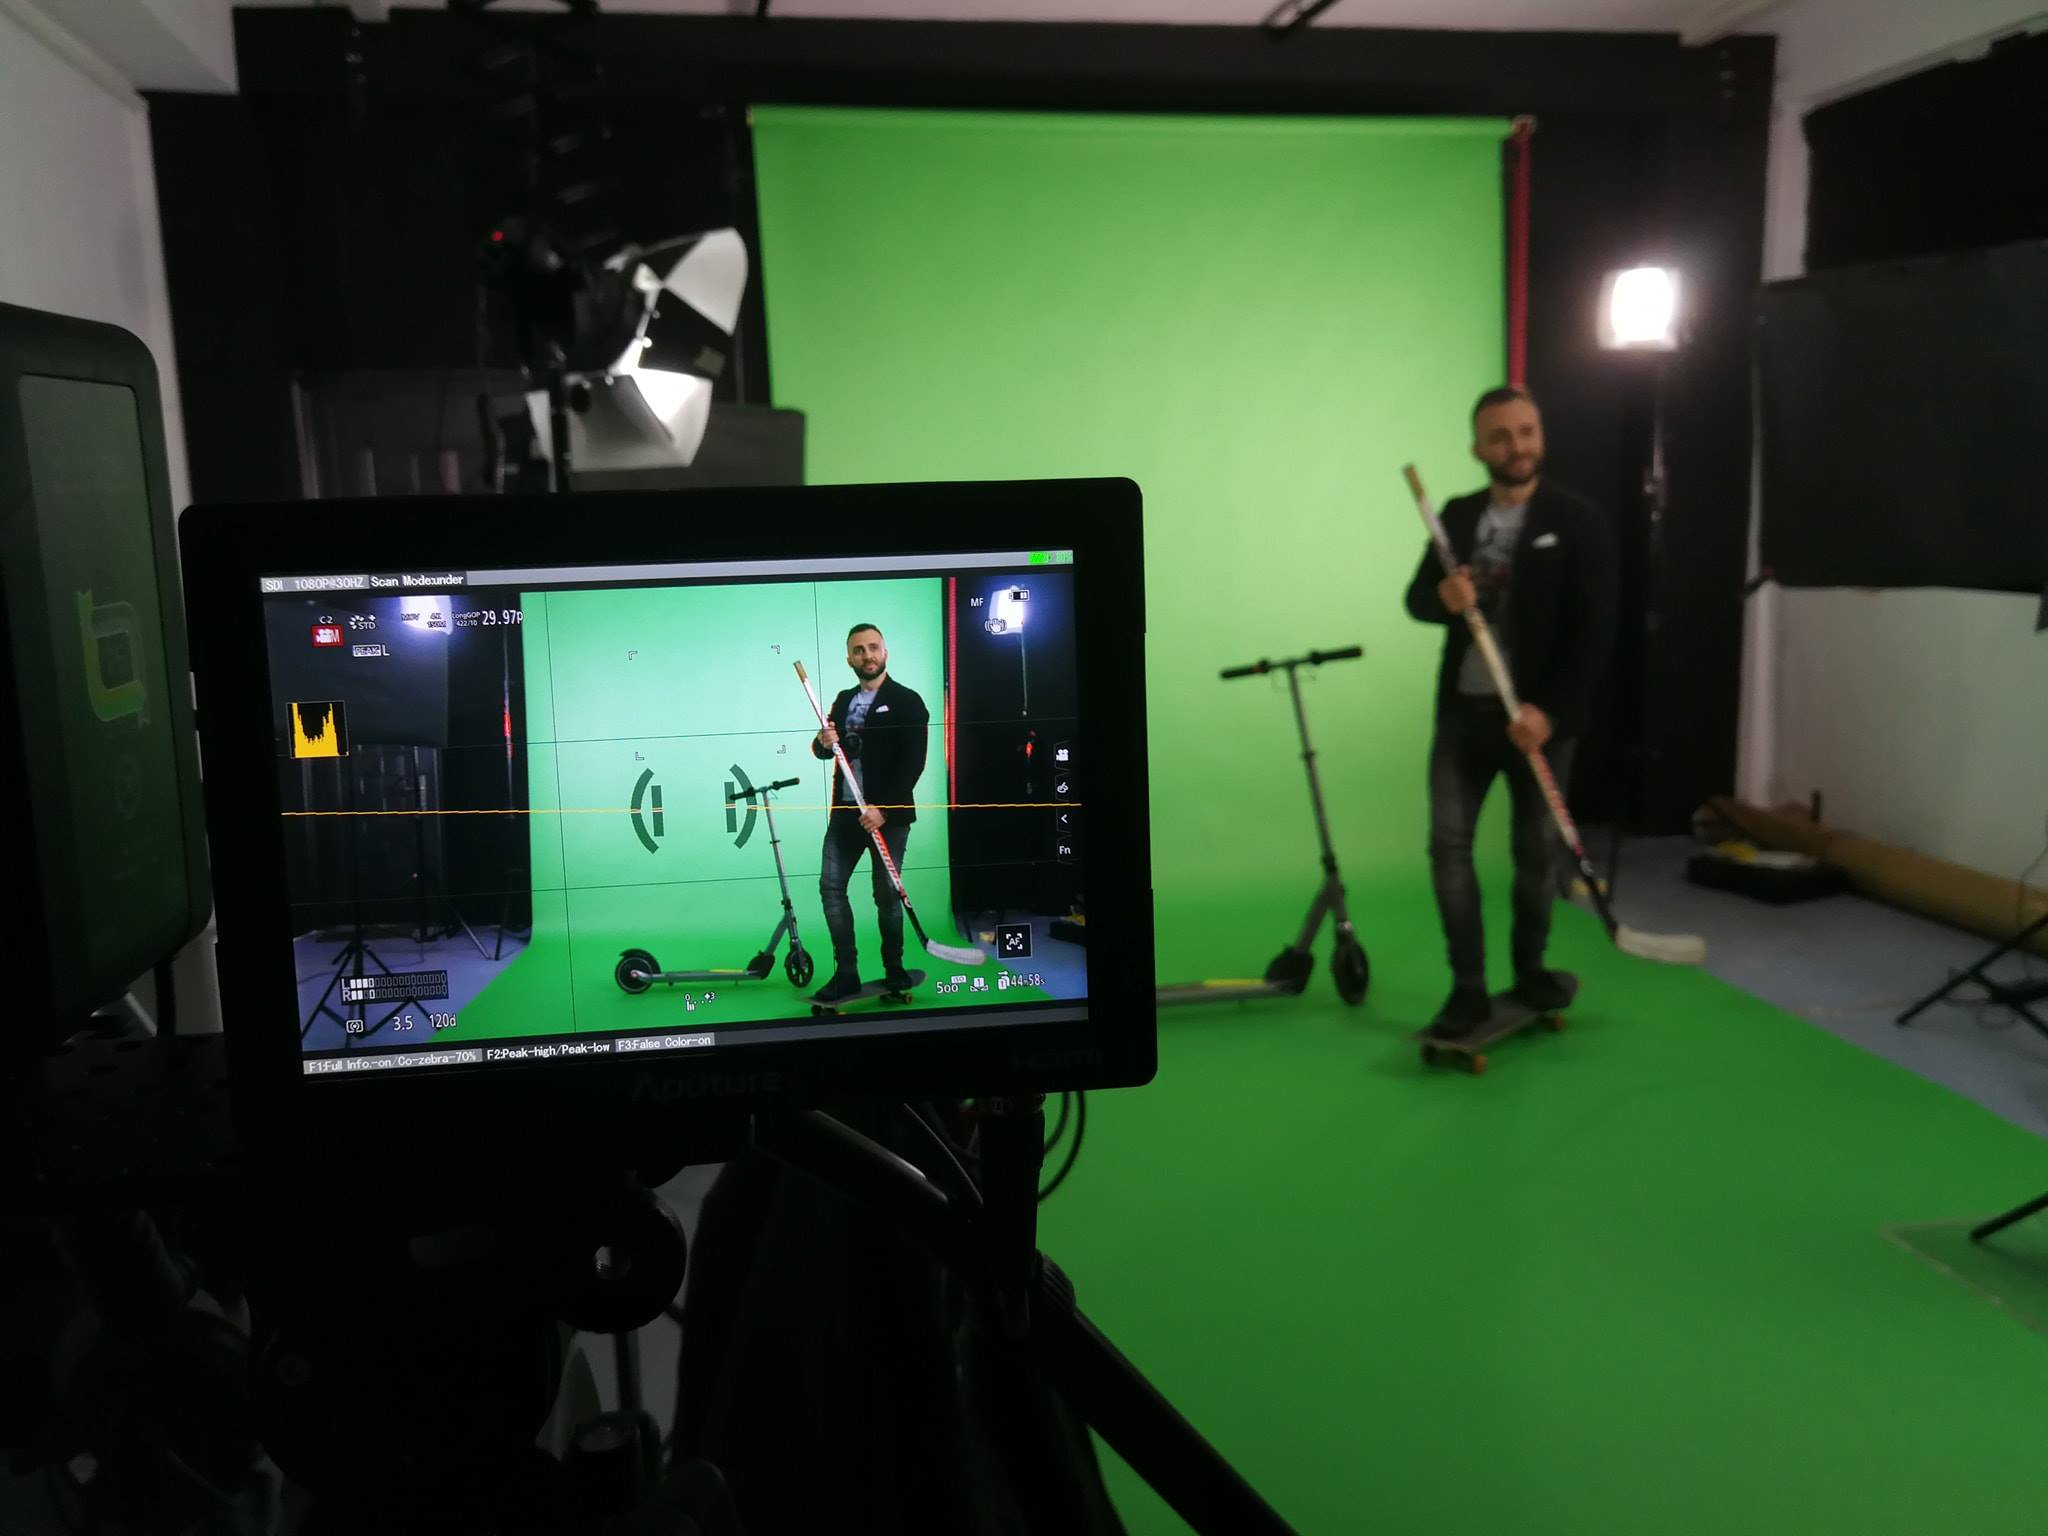 video of image production